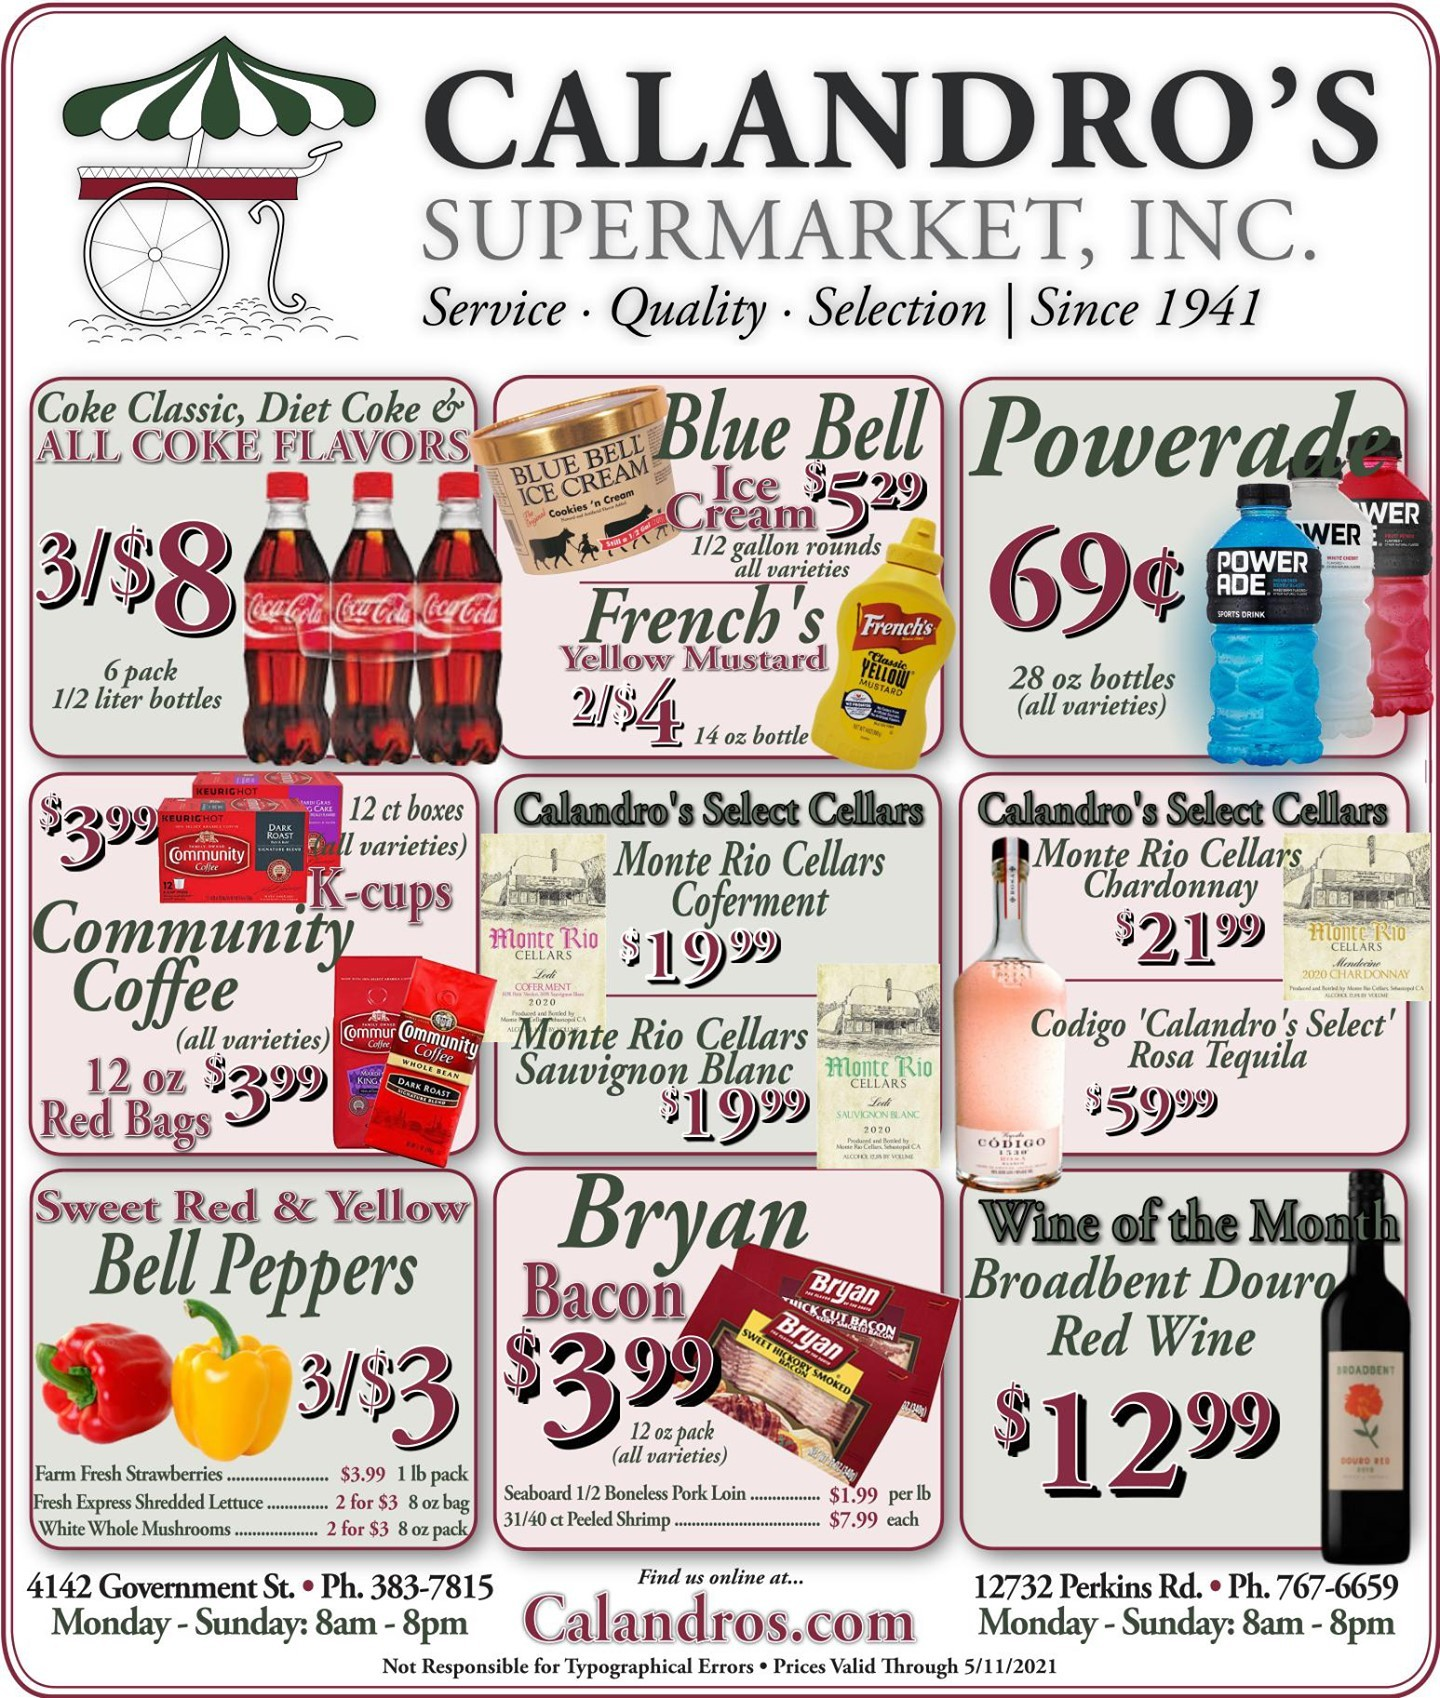 Calandro's Awesome Deals and Sales for This Week! (5/6/2021 – 5/11/2021) http://dlvr.it/Rz8PR0…